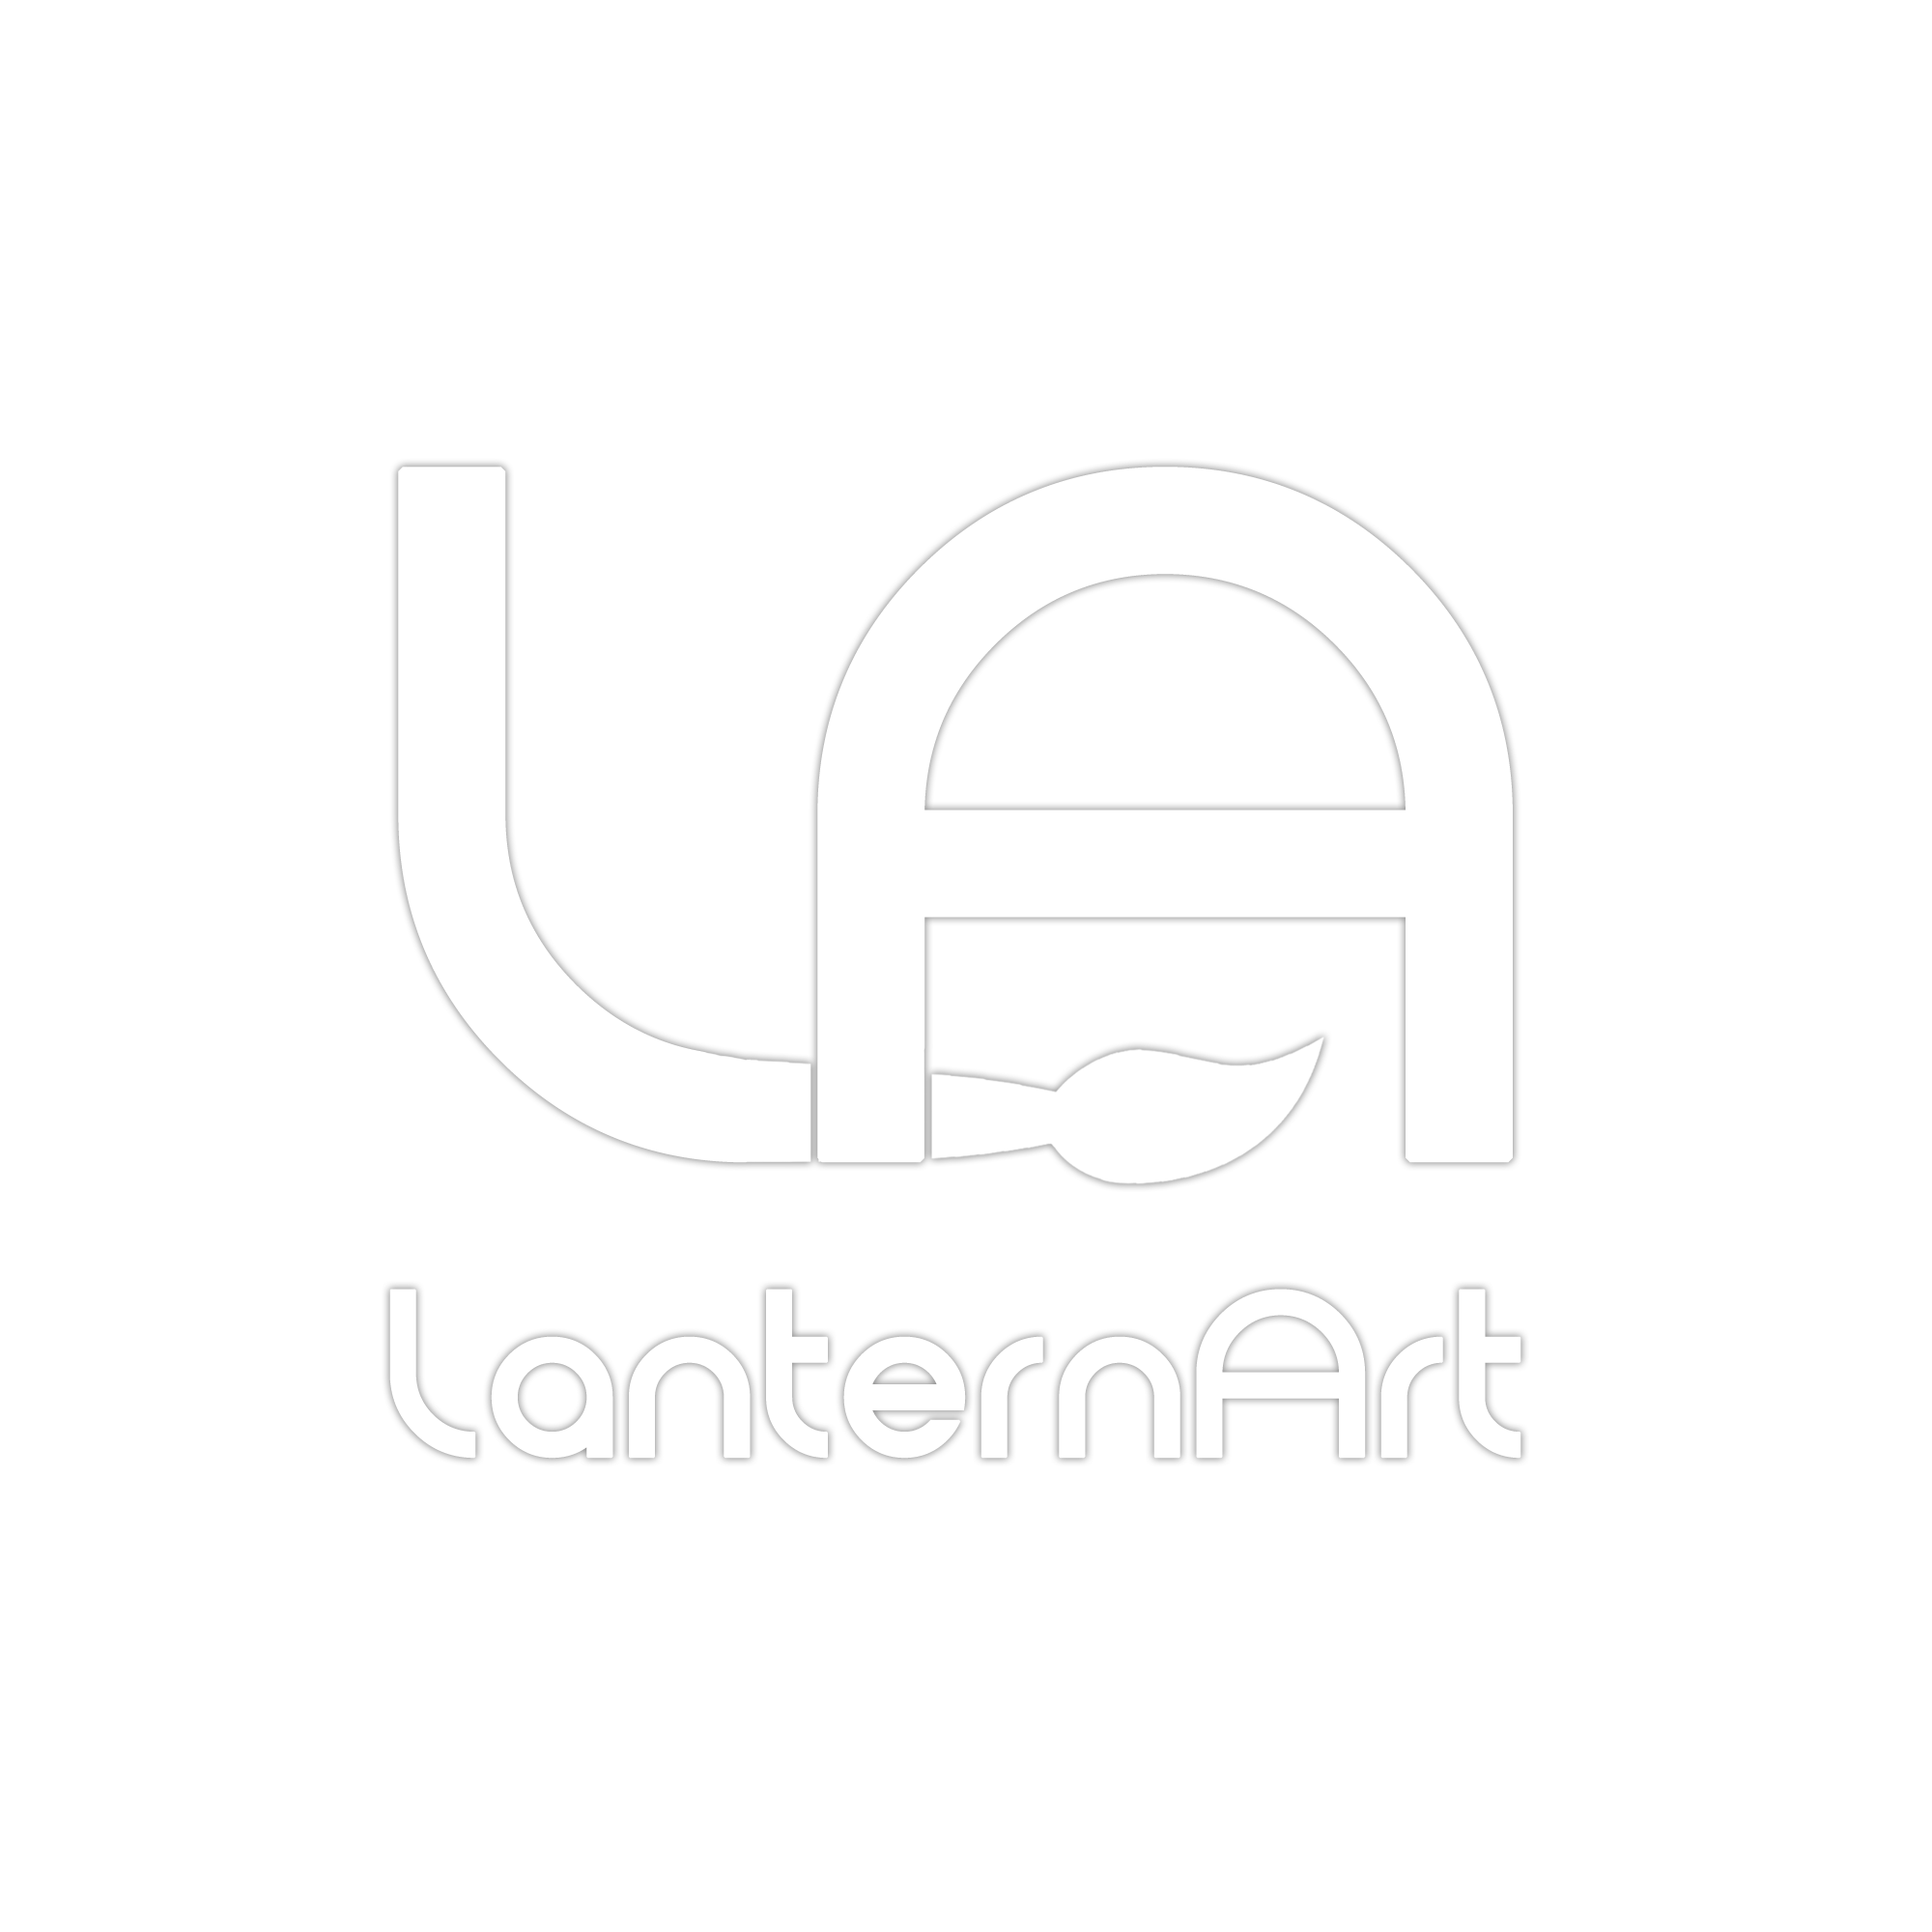 LanternArt - Photography and Digital Art